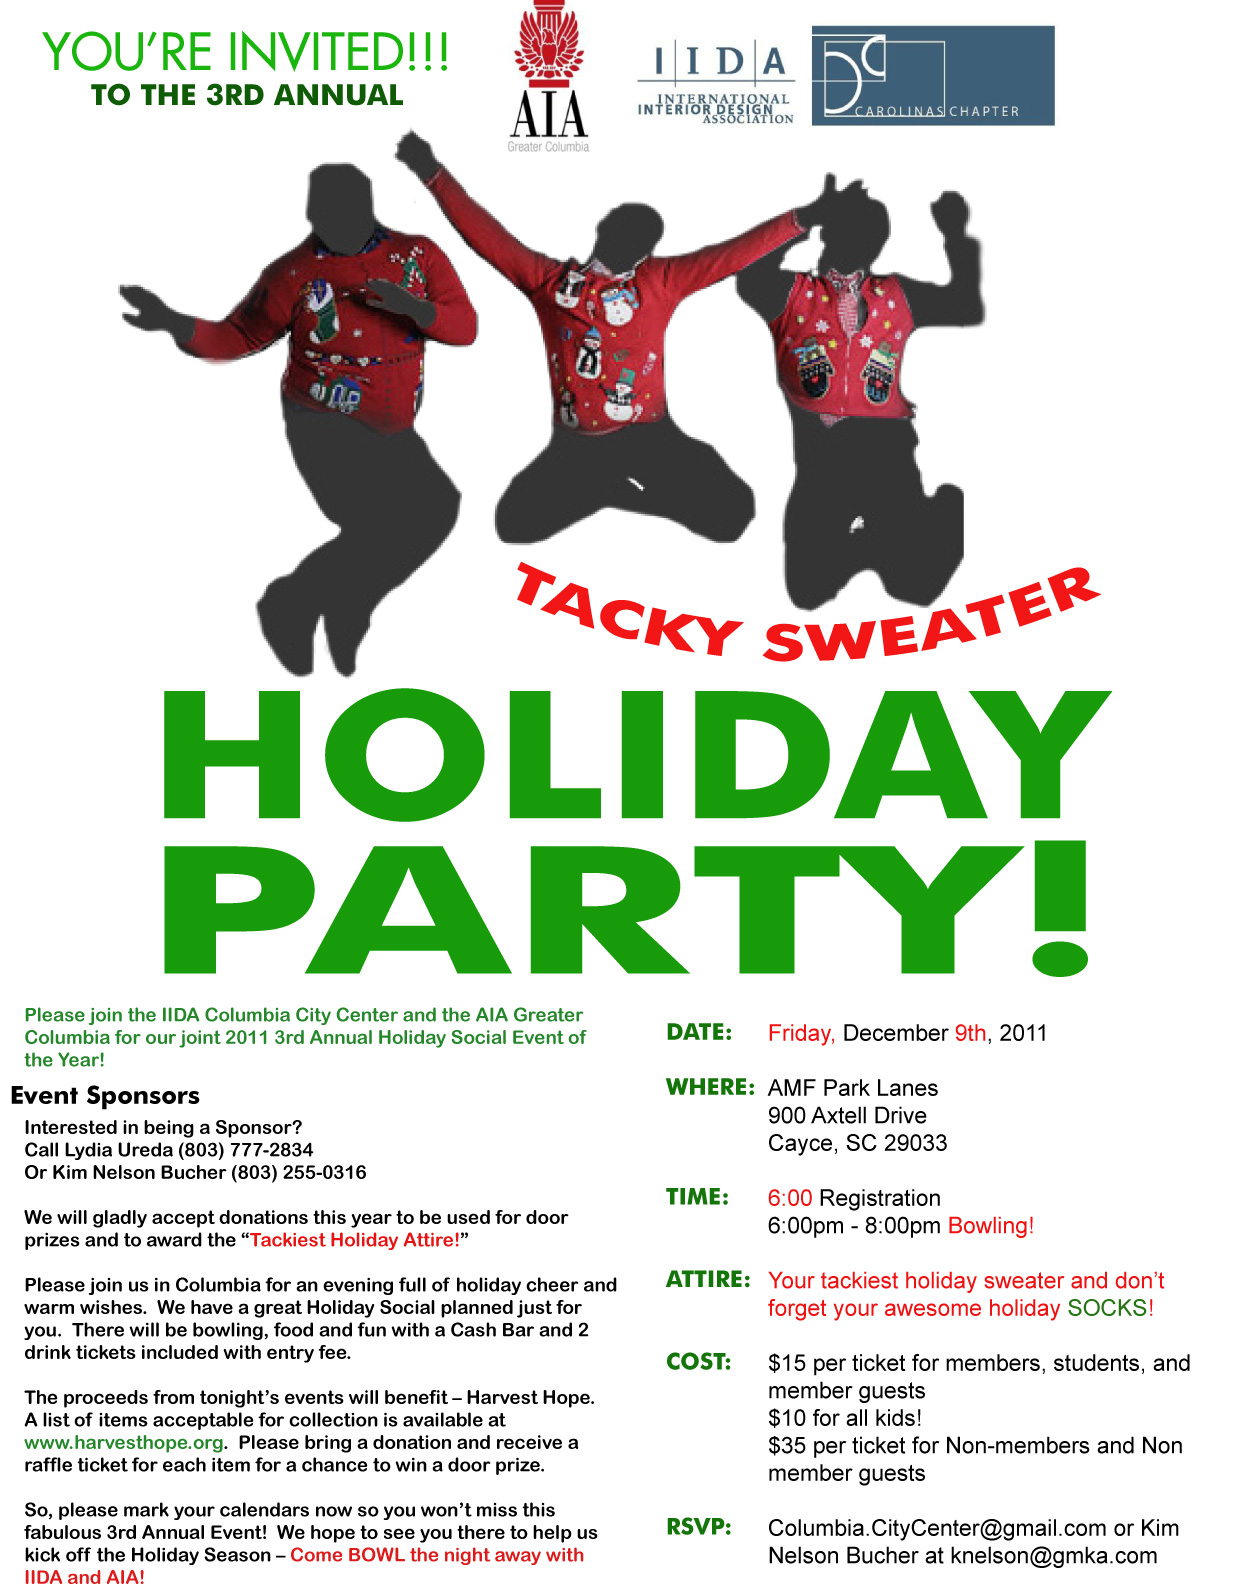 Tacky Sweater Holiday Party!! Friday Dec. 9th | aiacolumbia